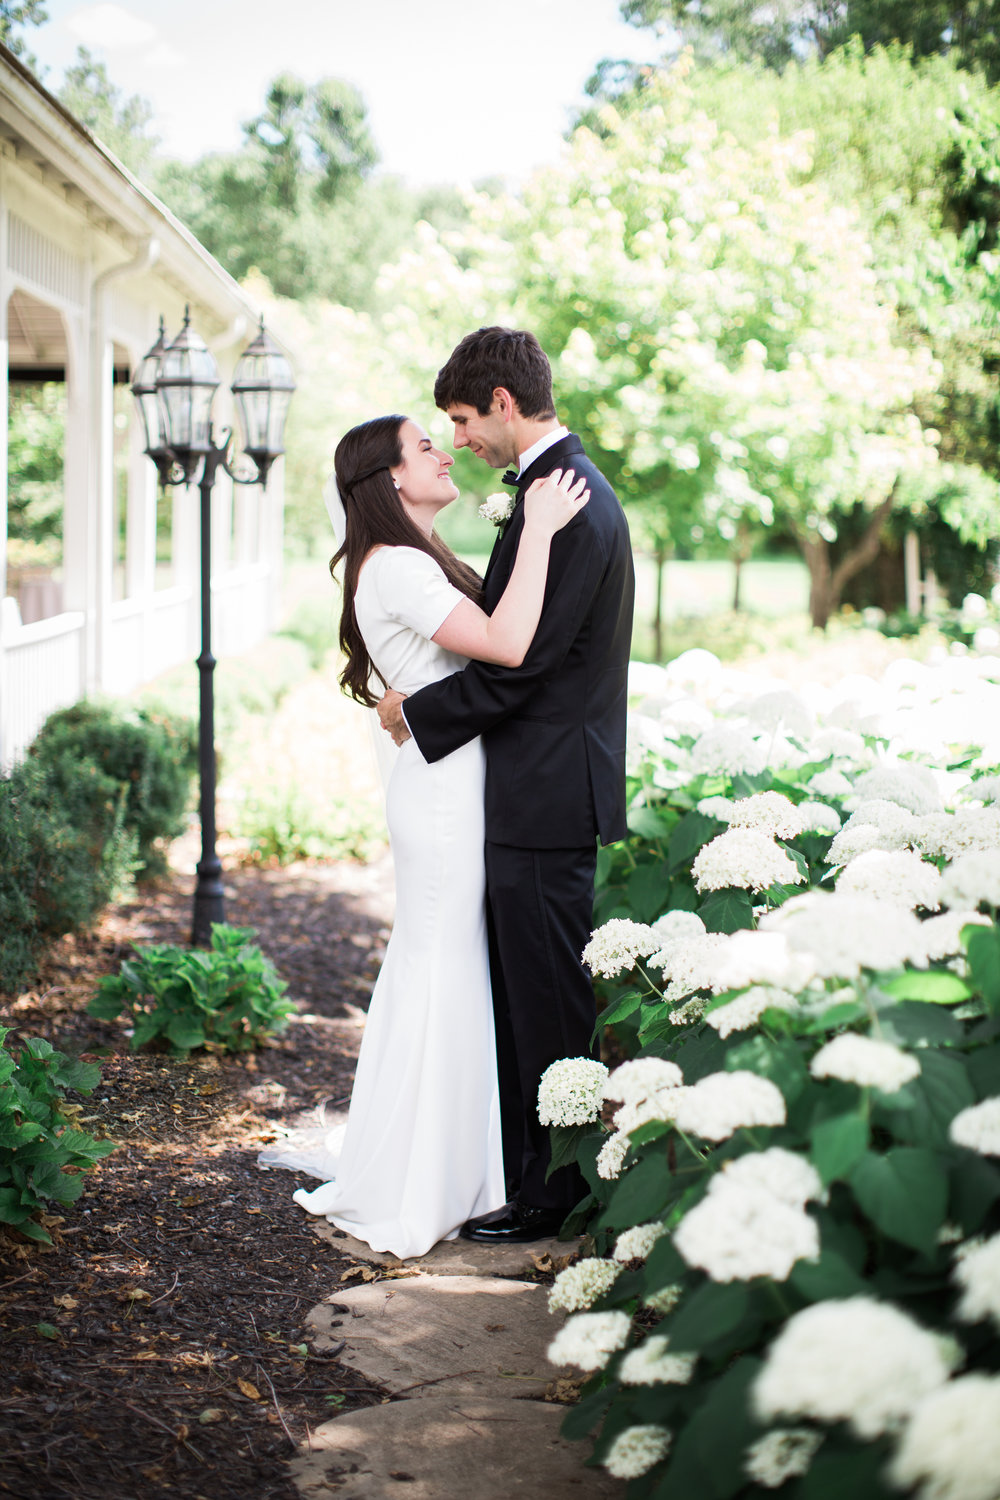 Katelyn_Wollet_Photography_Ann_Arbor_Wedding-16.jpg